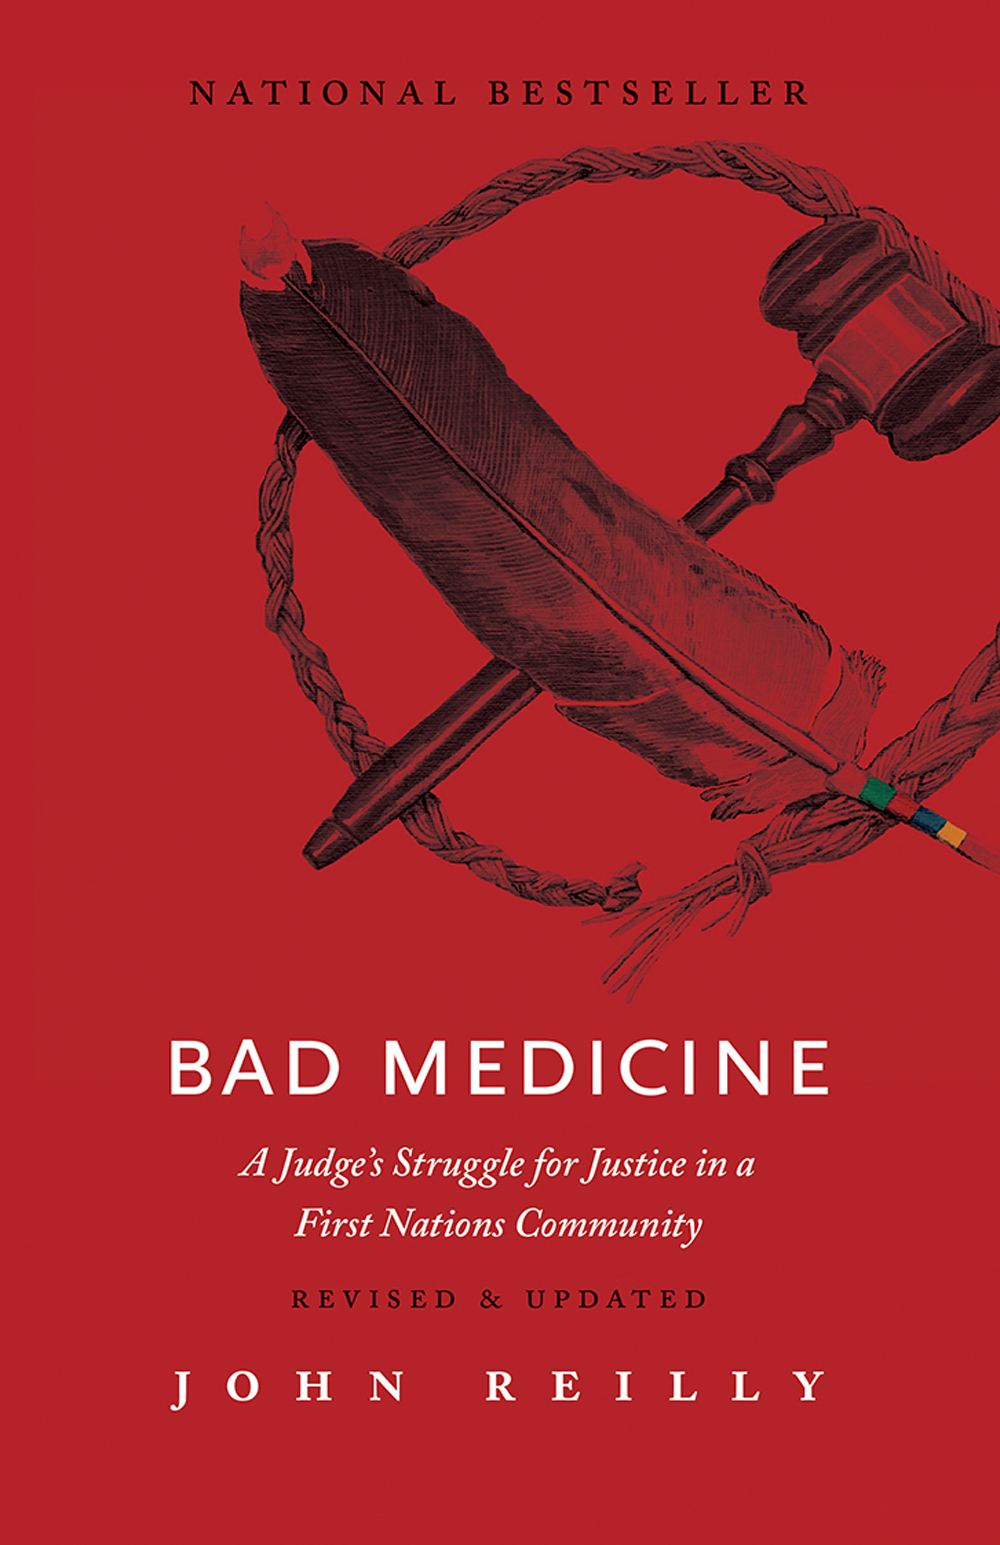 Bad Medicine - Revised & Updated : A Judge's Struggle for Justice in a First Nations Community – Revised & Updated | History & Society